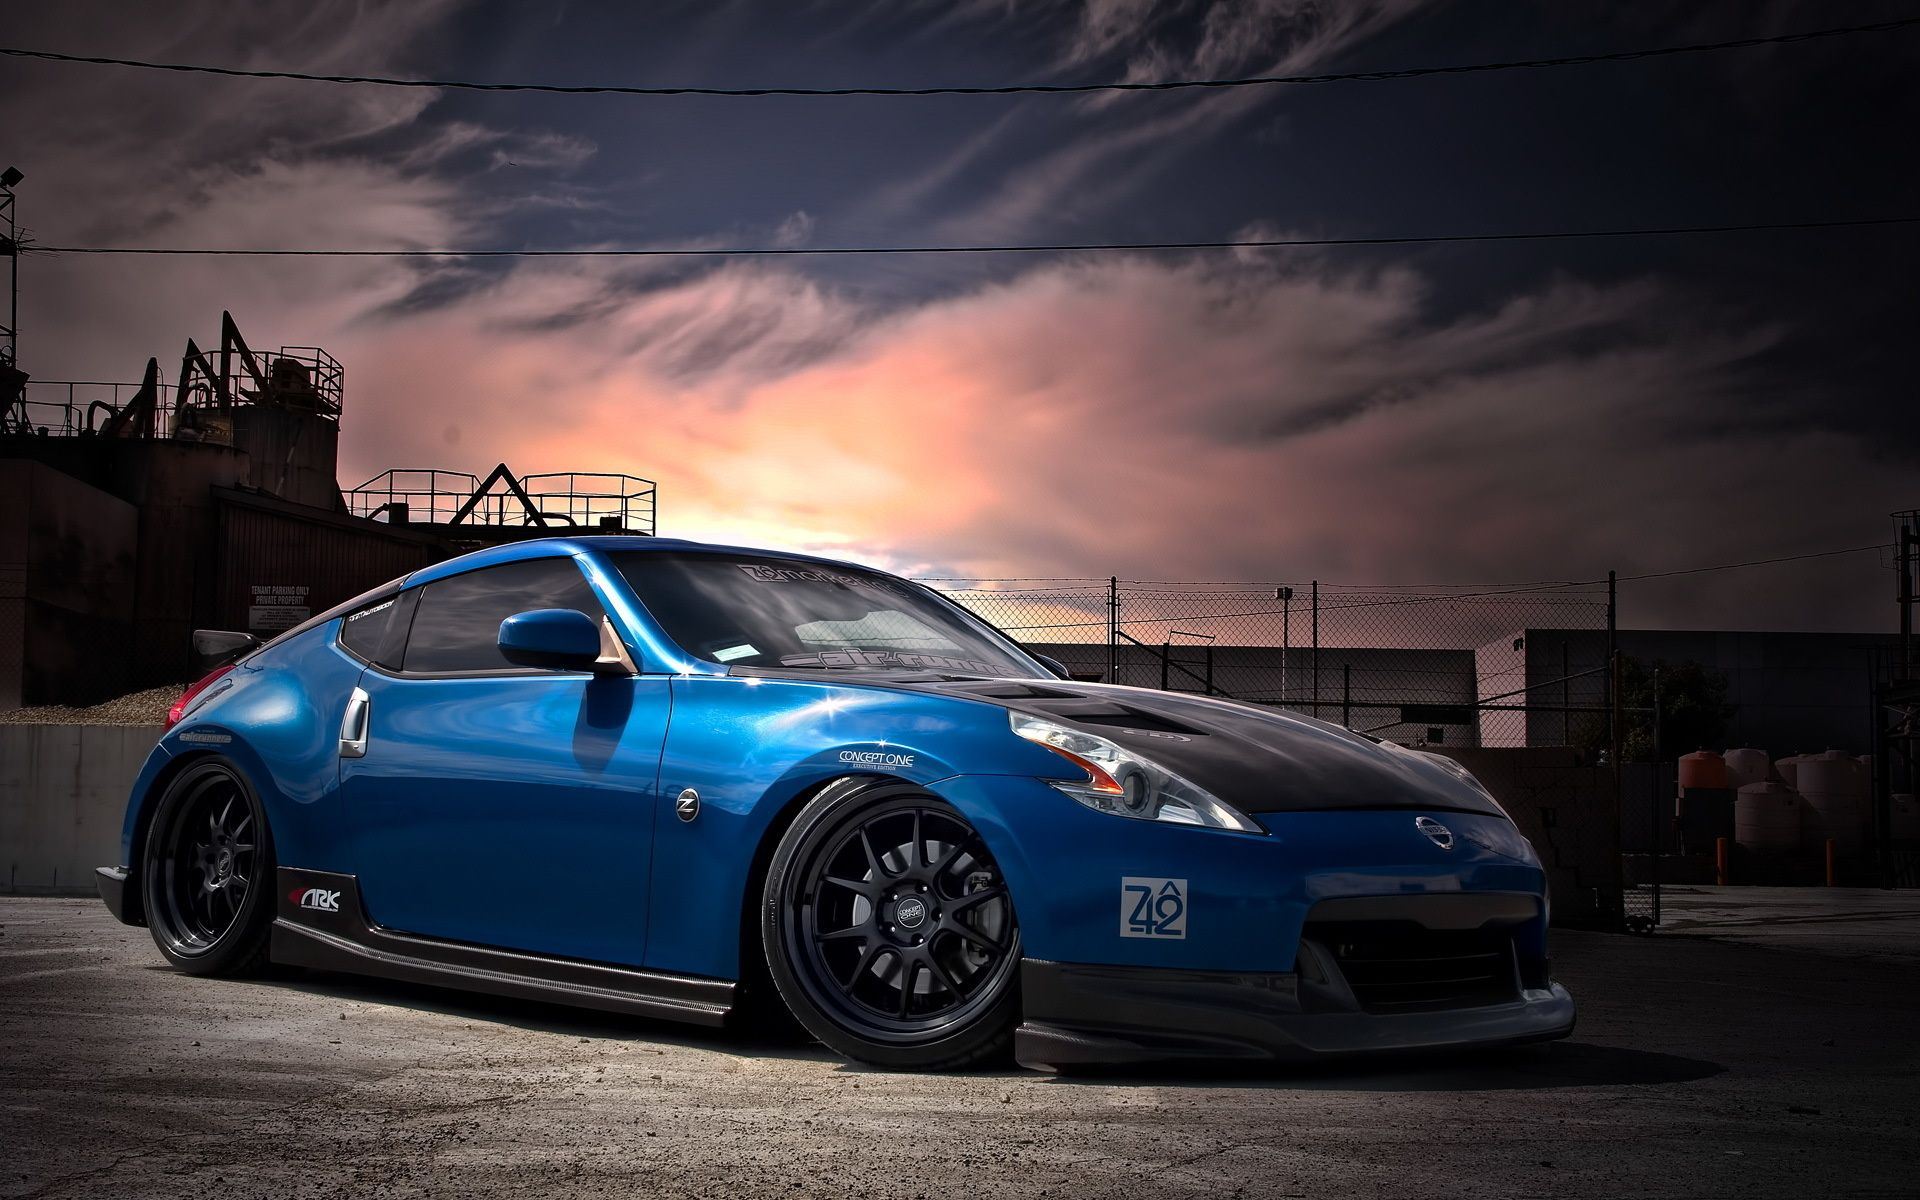 Attrayant Nissan 370Z JDM Fire Water Car 2013 « El Tony | Download  Wallpaper | Pinterest